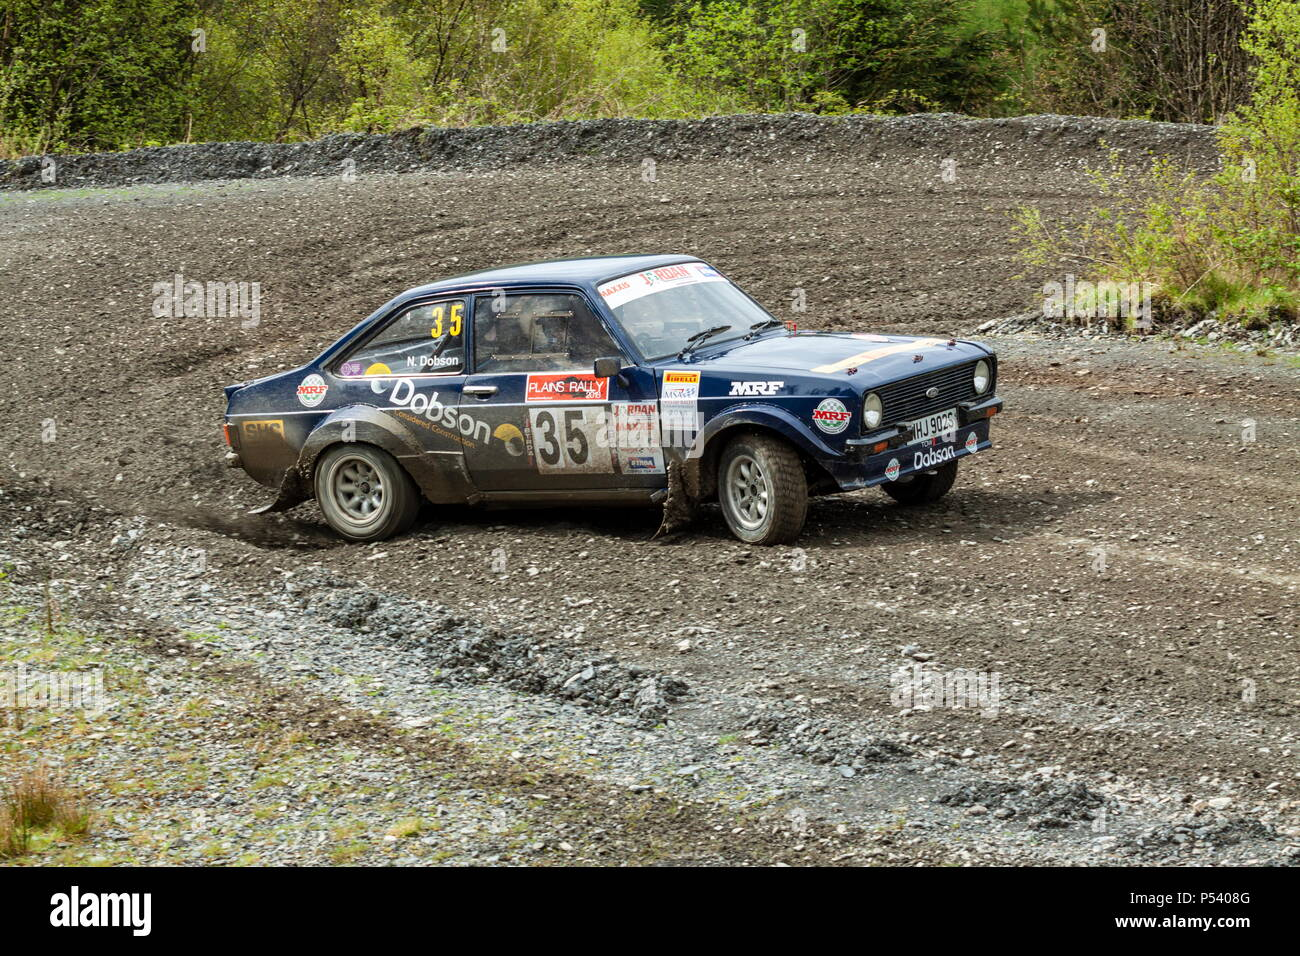 A Ford Mkii Escort rally car taking a corner on the Plains Rally in North Wales - Stock Image